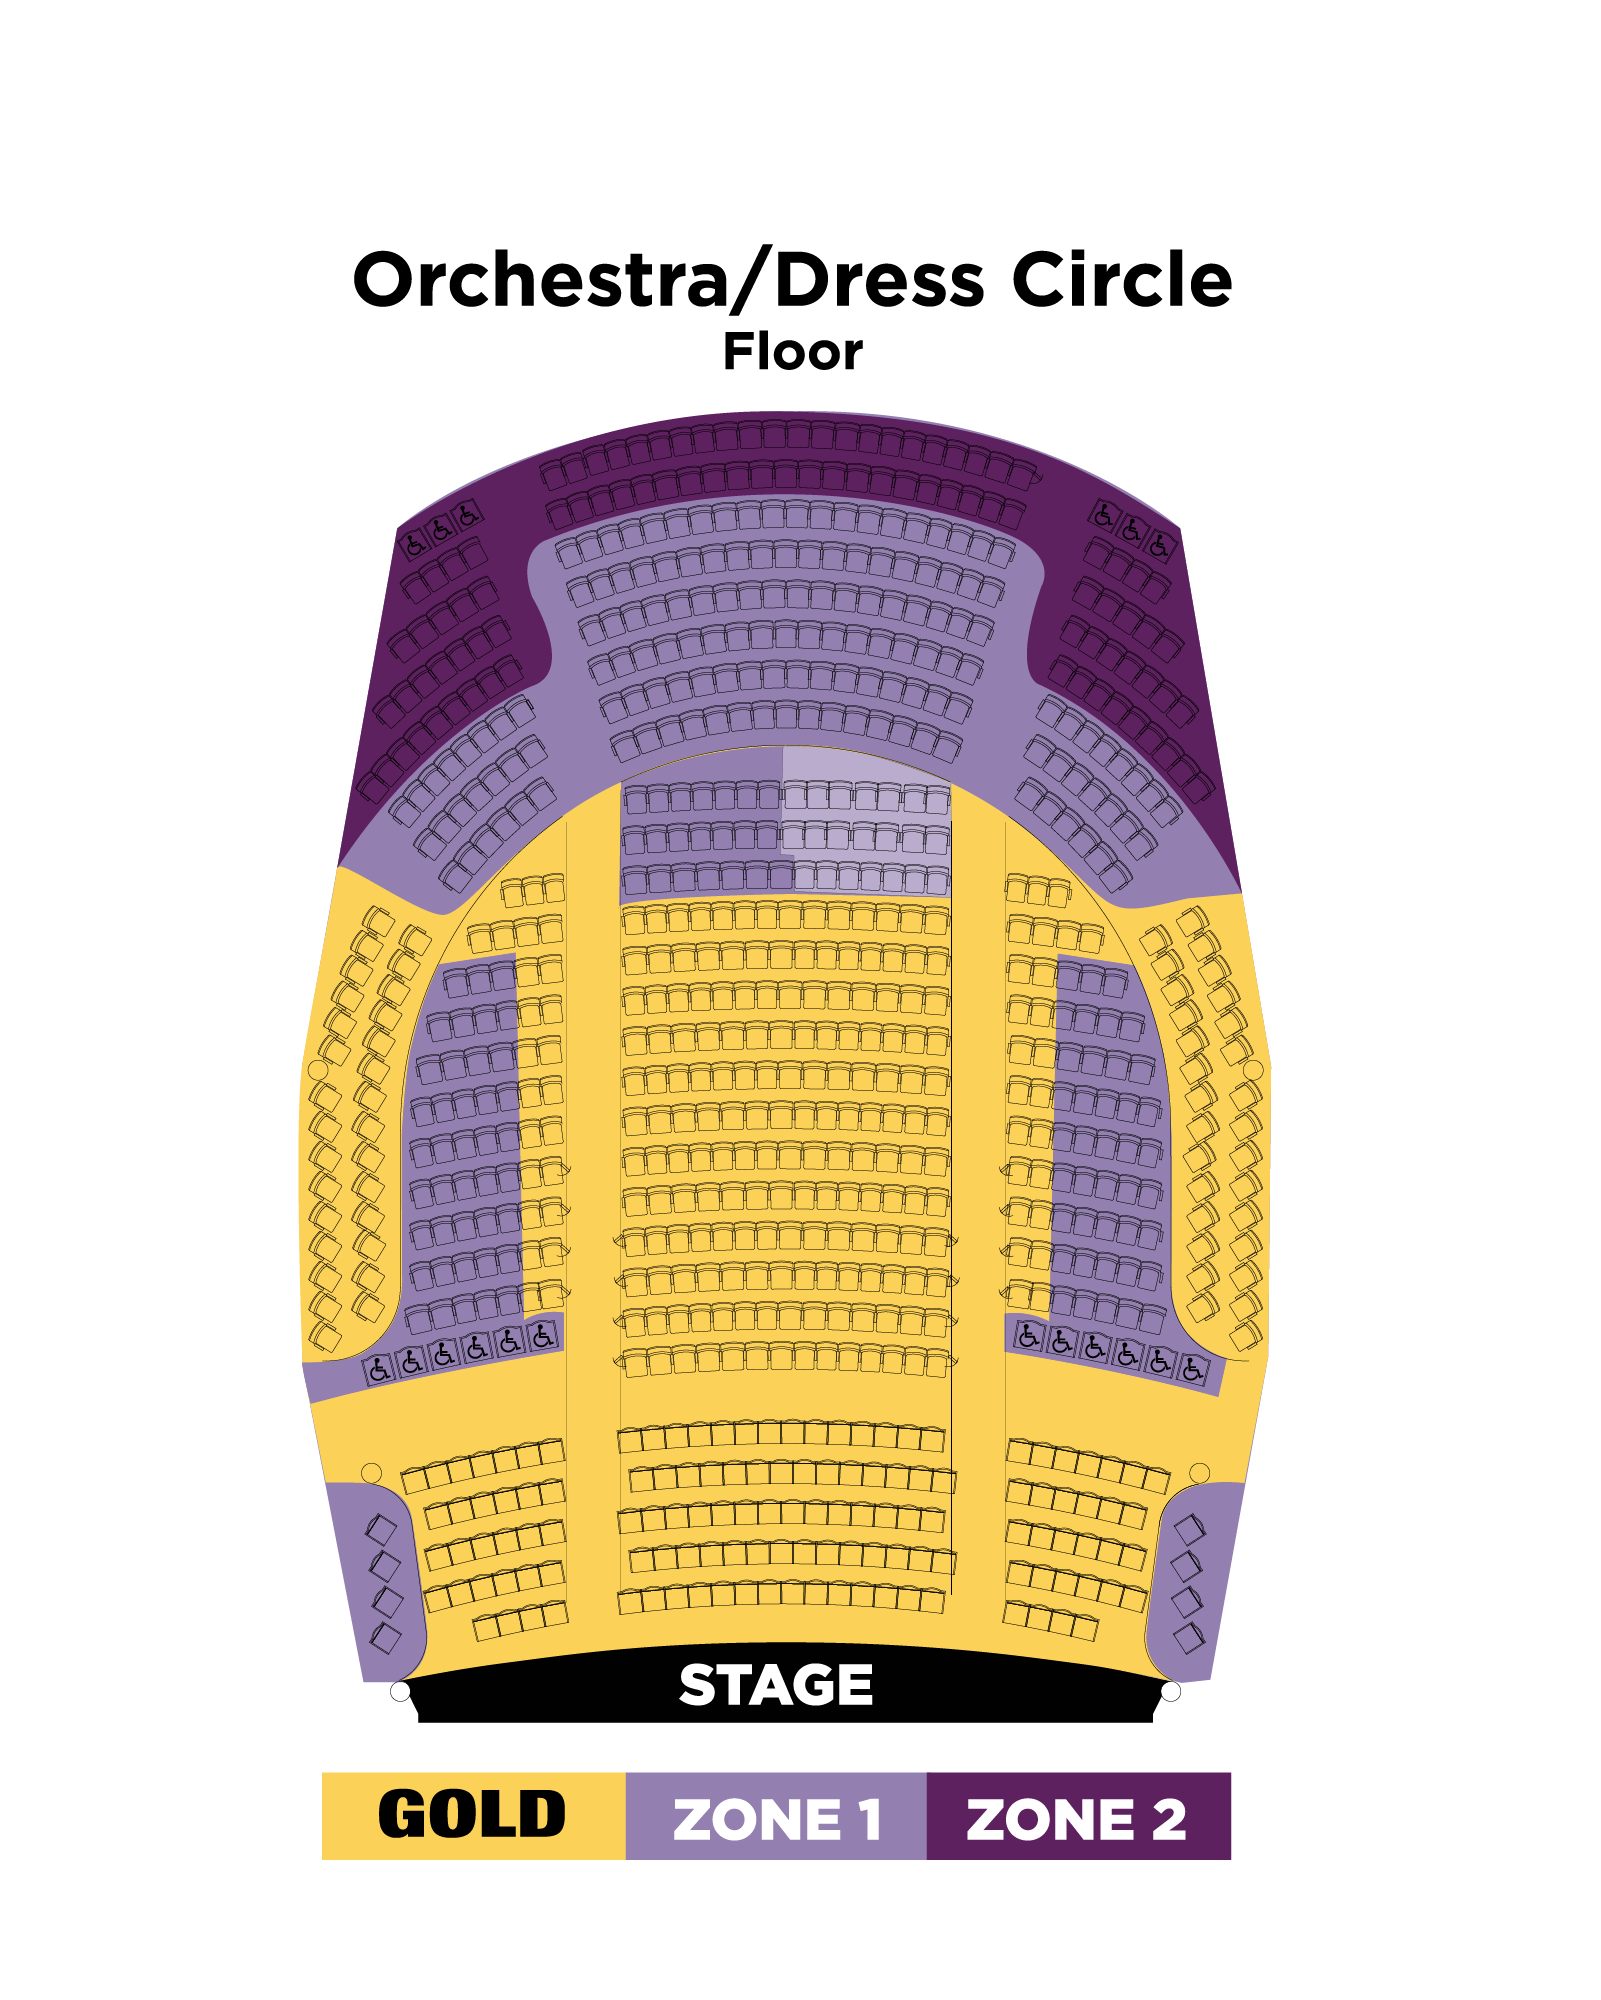 Orchestra/Dress Circle Seating Map